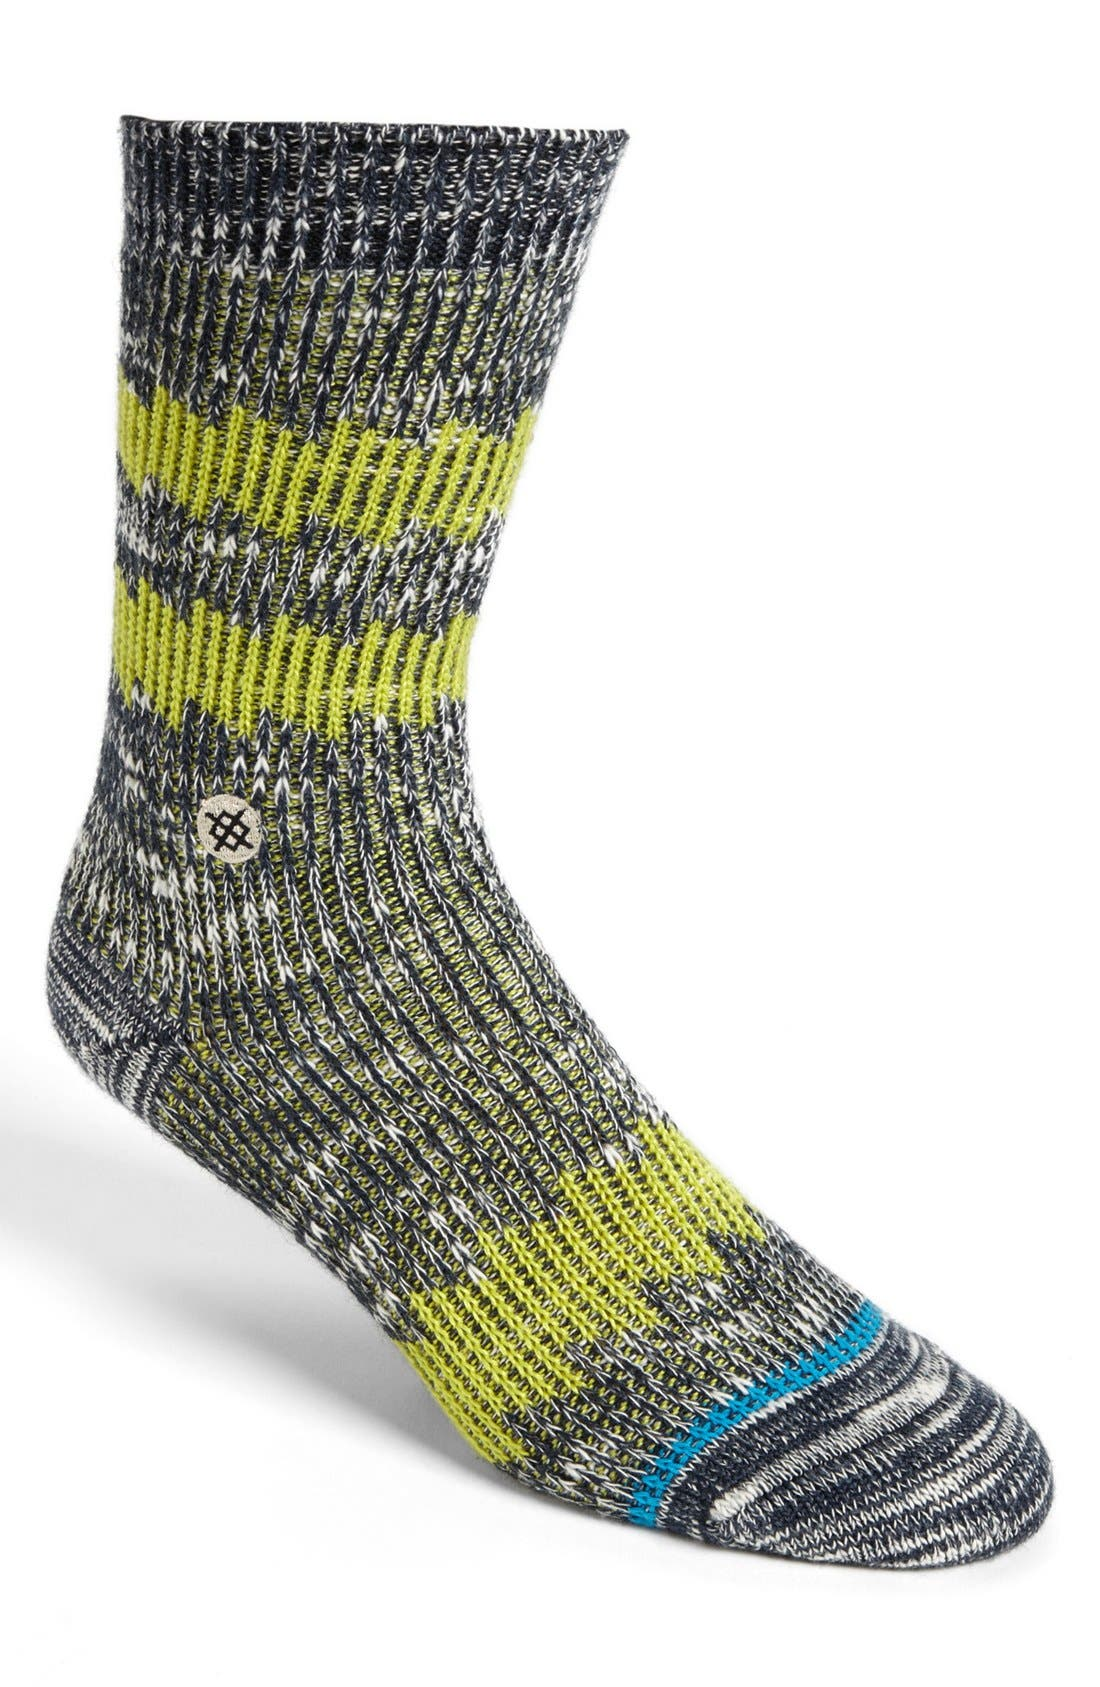 Alternate Image 1 Selected - Stance 'Sawtooth' Socks